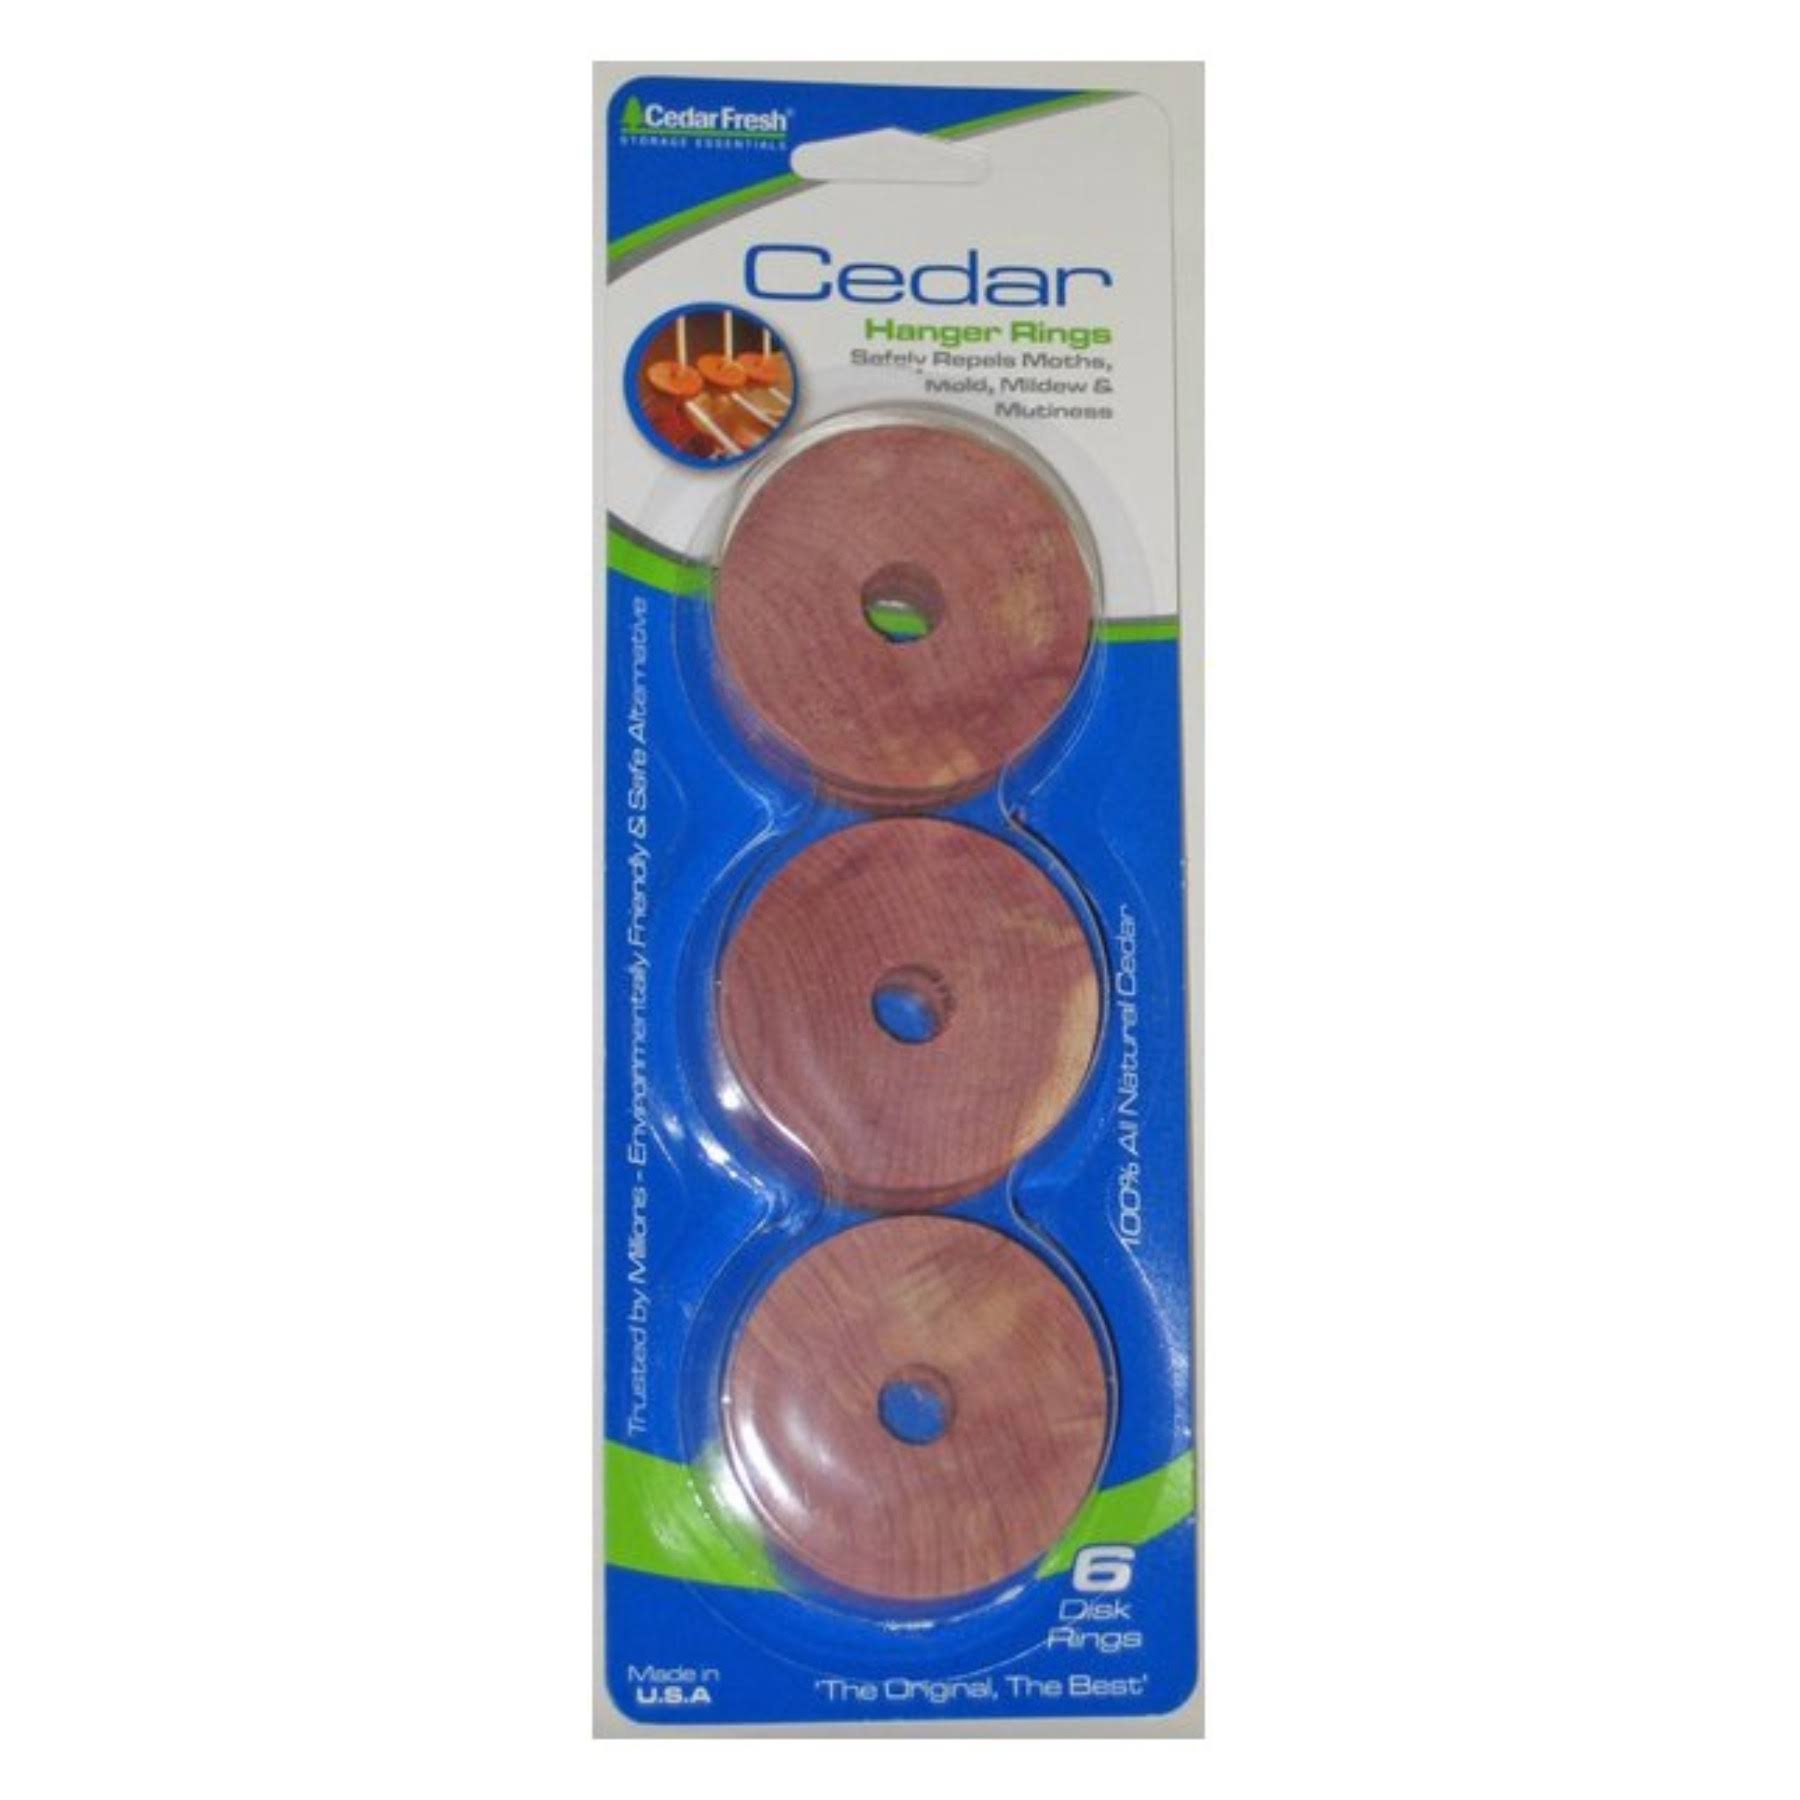 Cedar Fresh Home Products Hanger Rings